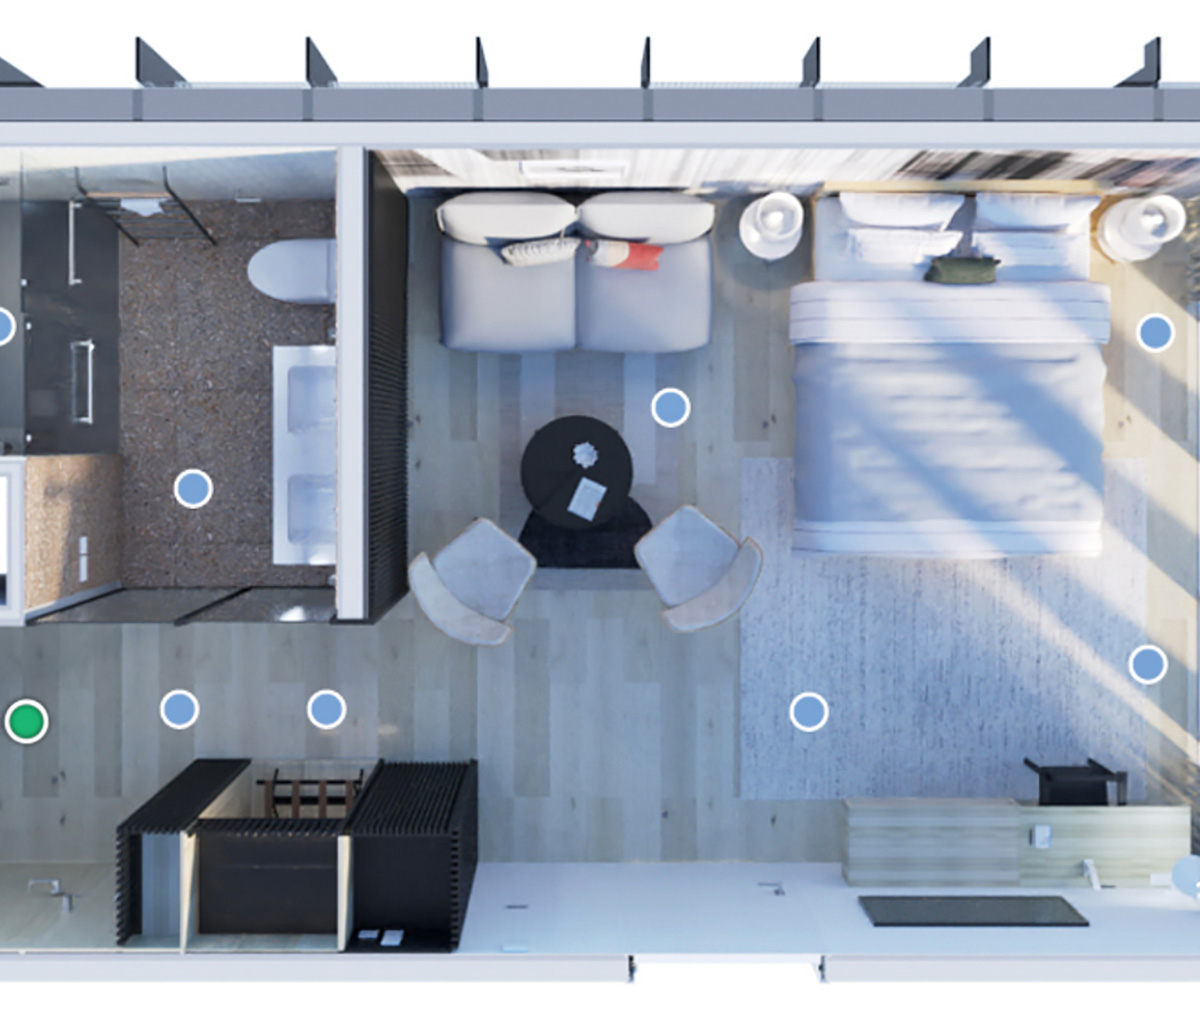 MiTek 3D Design Modeling - Top-down view of a 3D model of an apartment with furniture